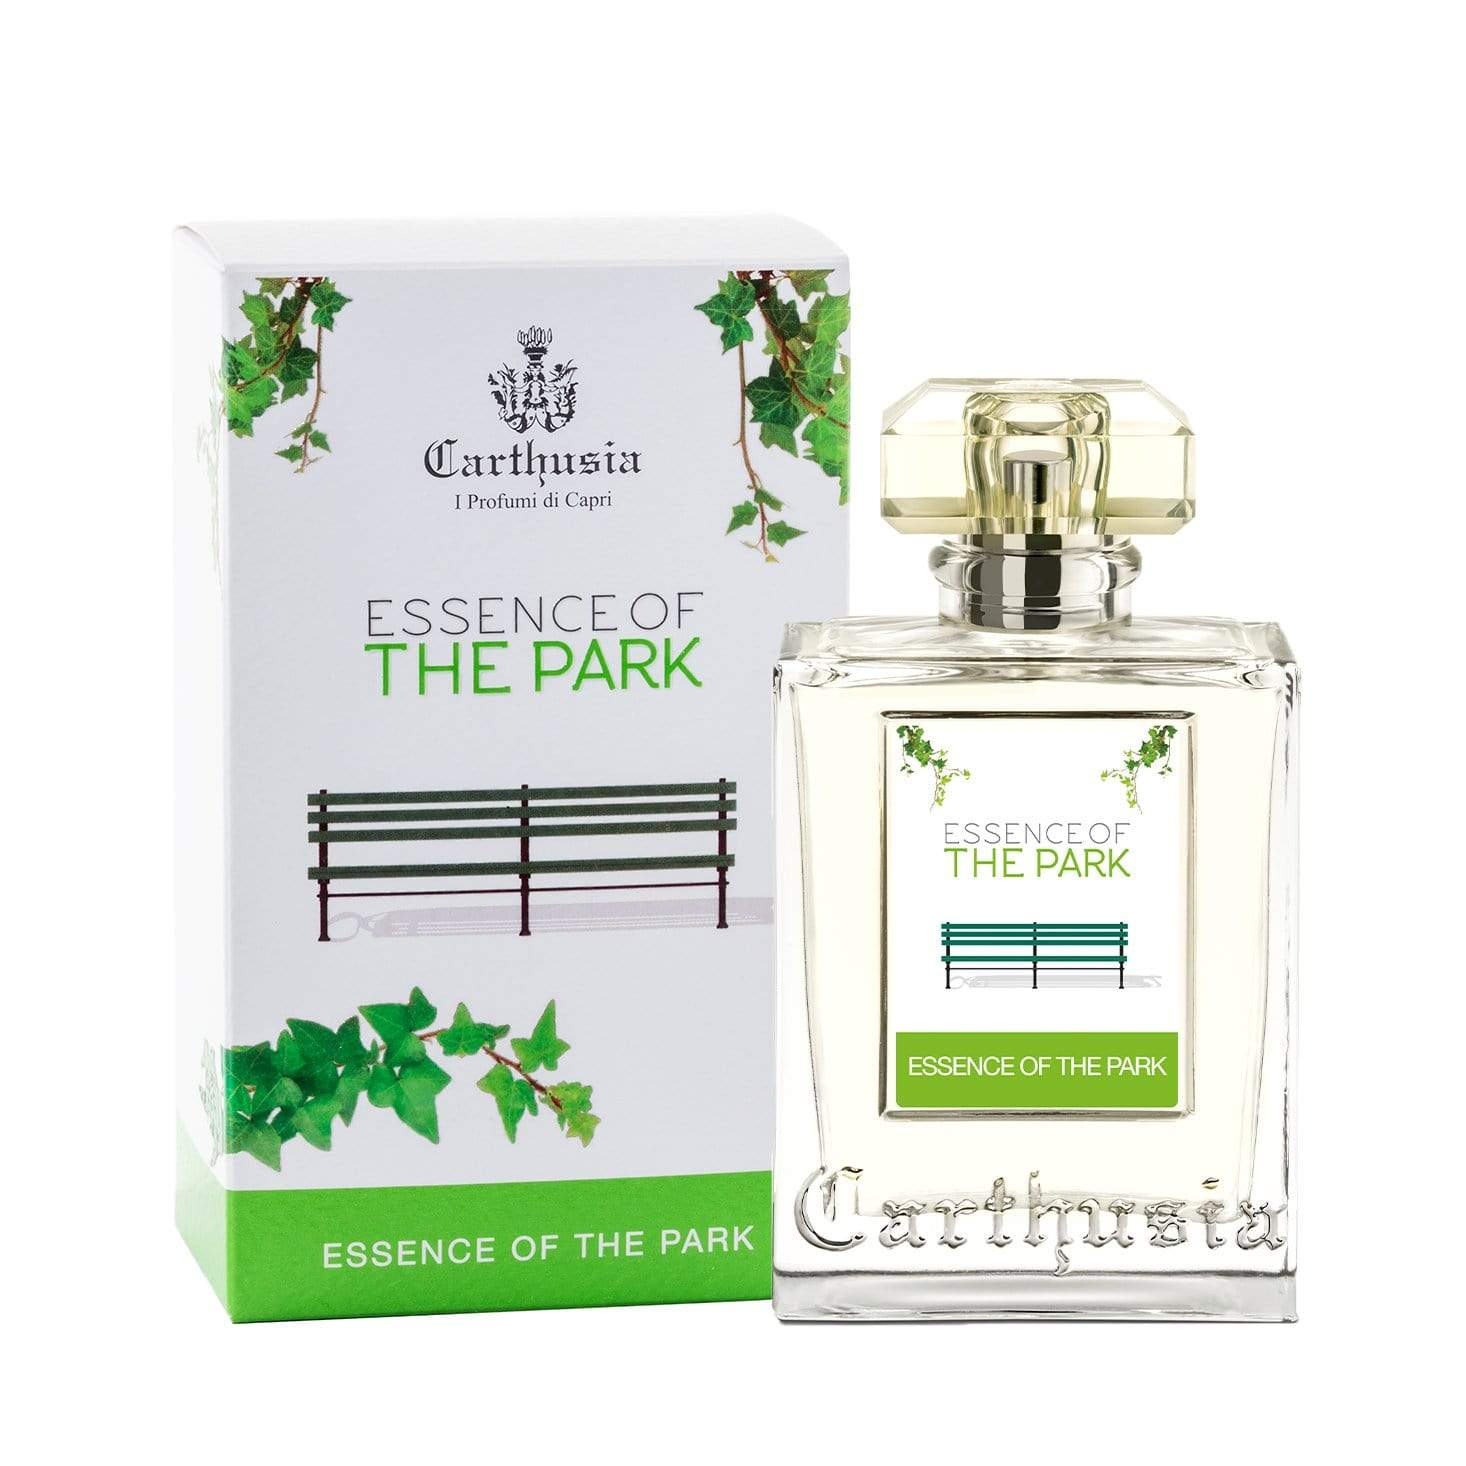 CARTHUSIA Essence of The Park Eau de Parfum - 100ml